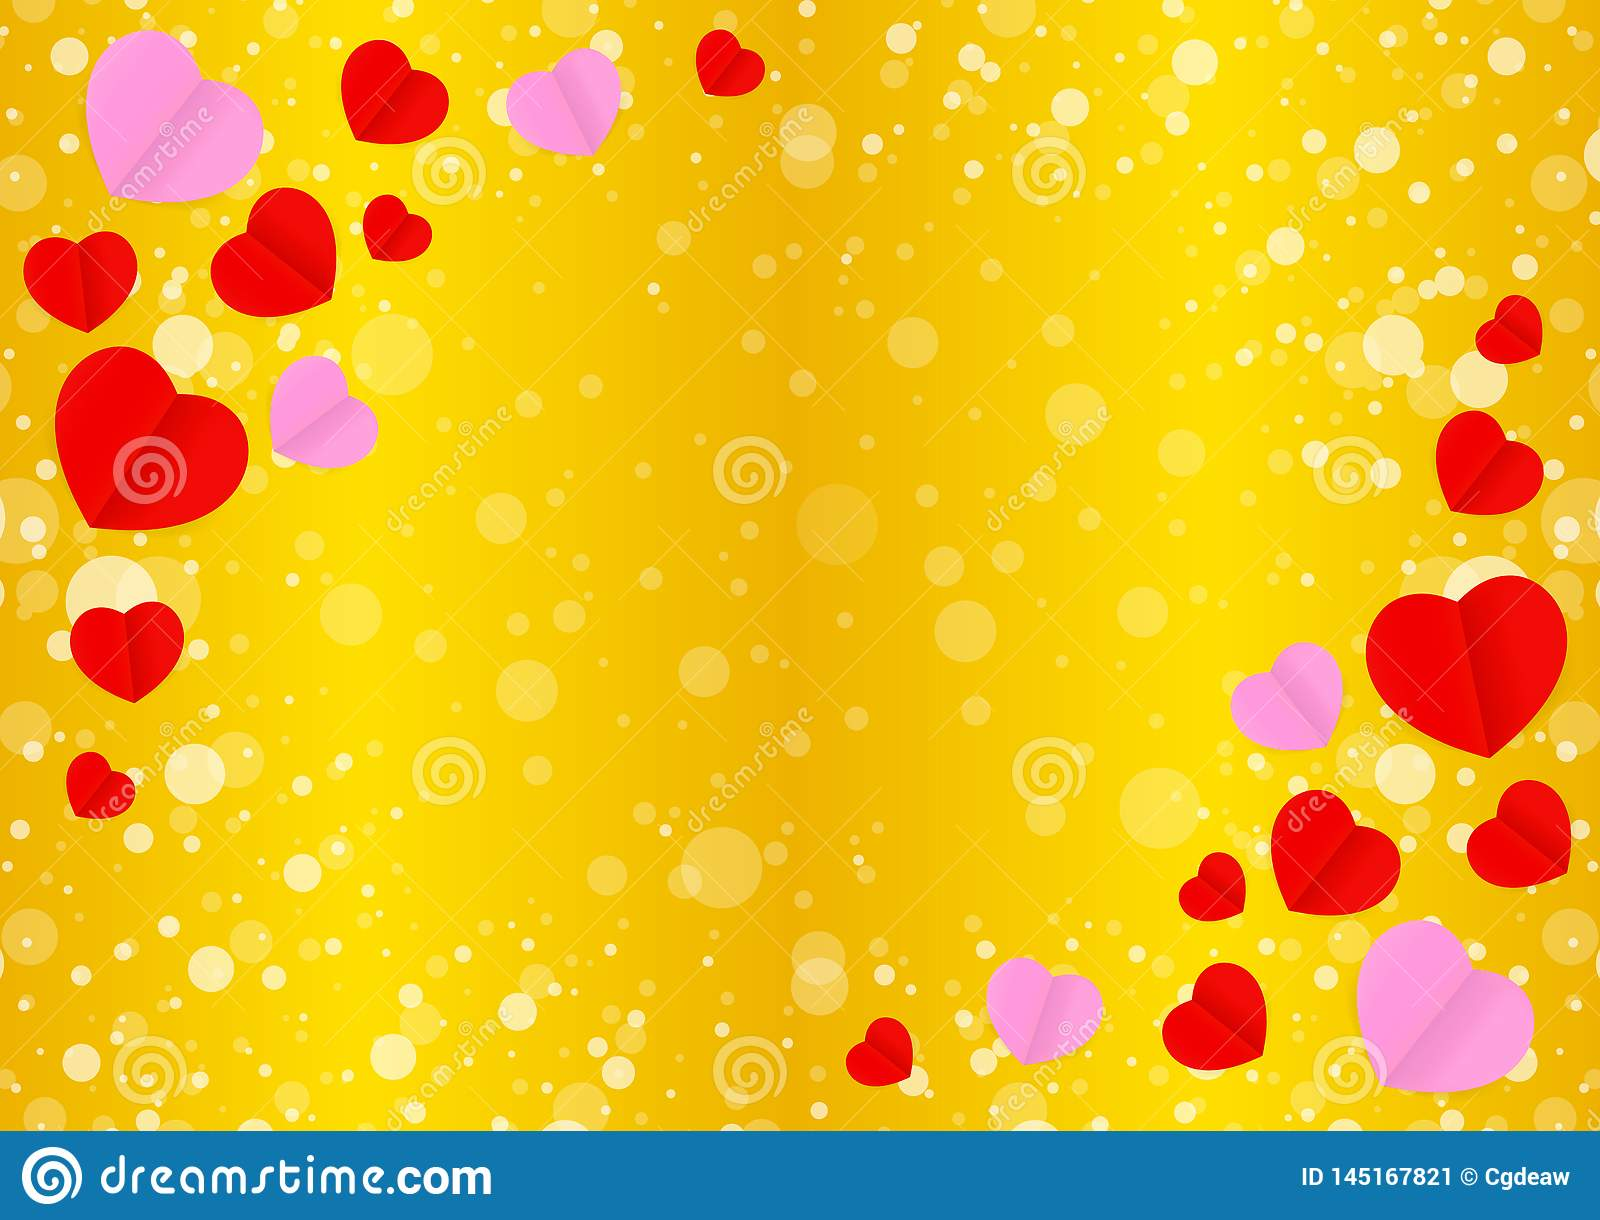 Empty Golden Frame And Red Pink Heart Shape For Template